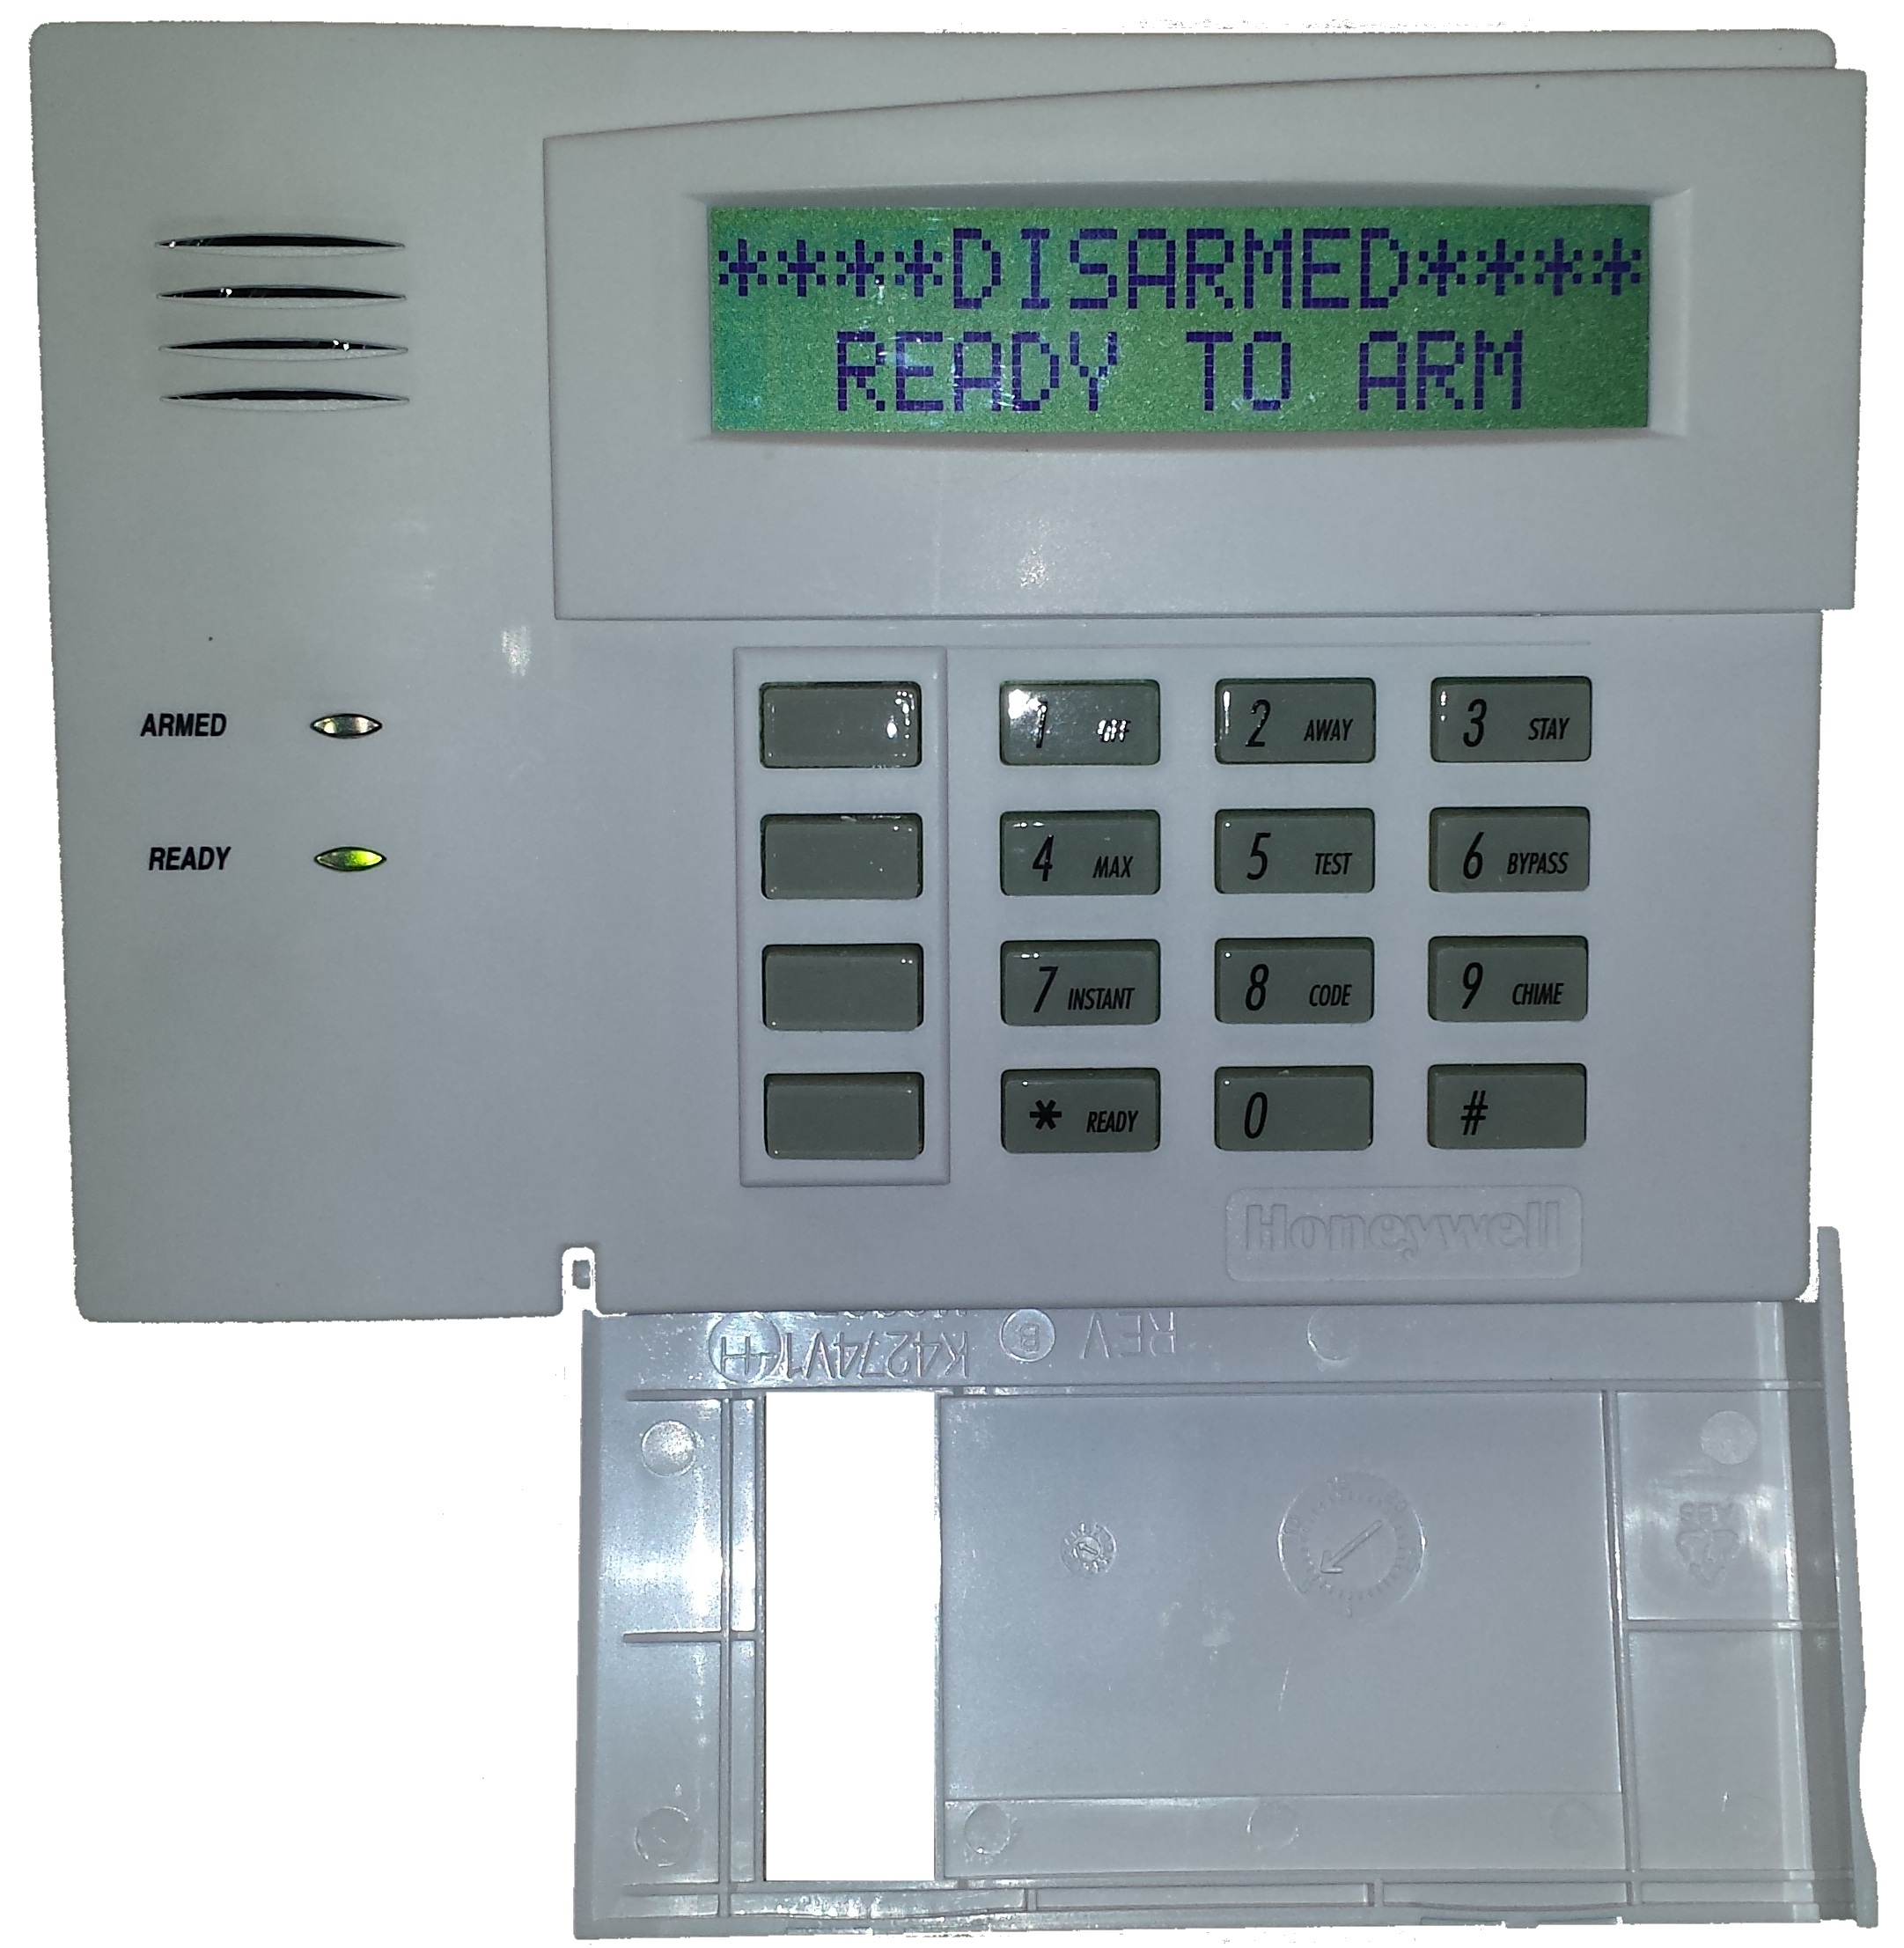 tech tips how to check a trouble condition on a honeywell vista rh fire monitoring com ademco alarm system manual vista 128 Gemini Alarm System Manual